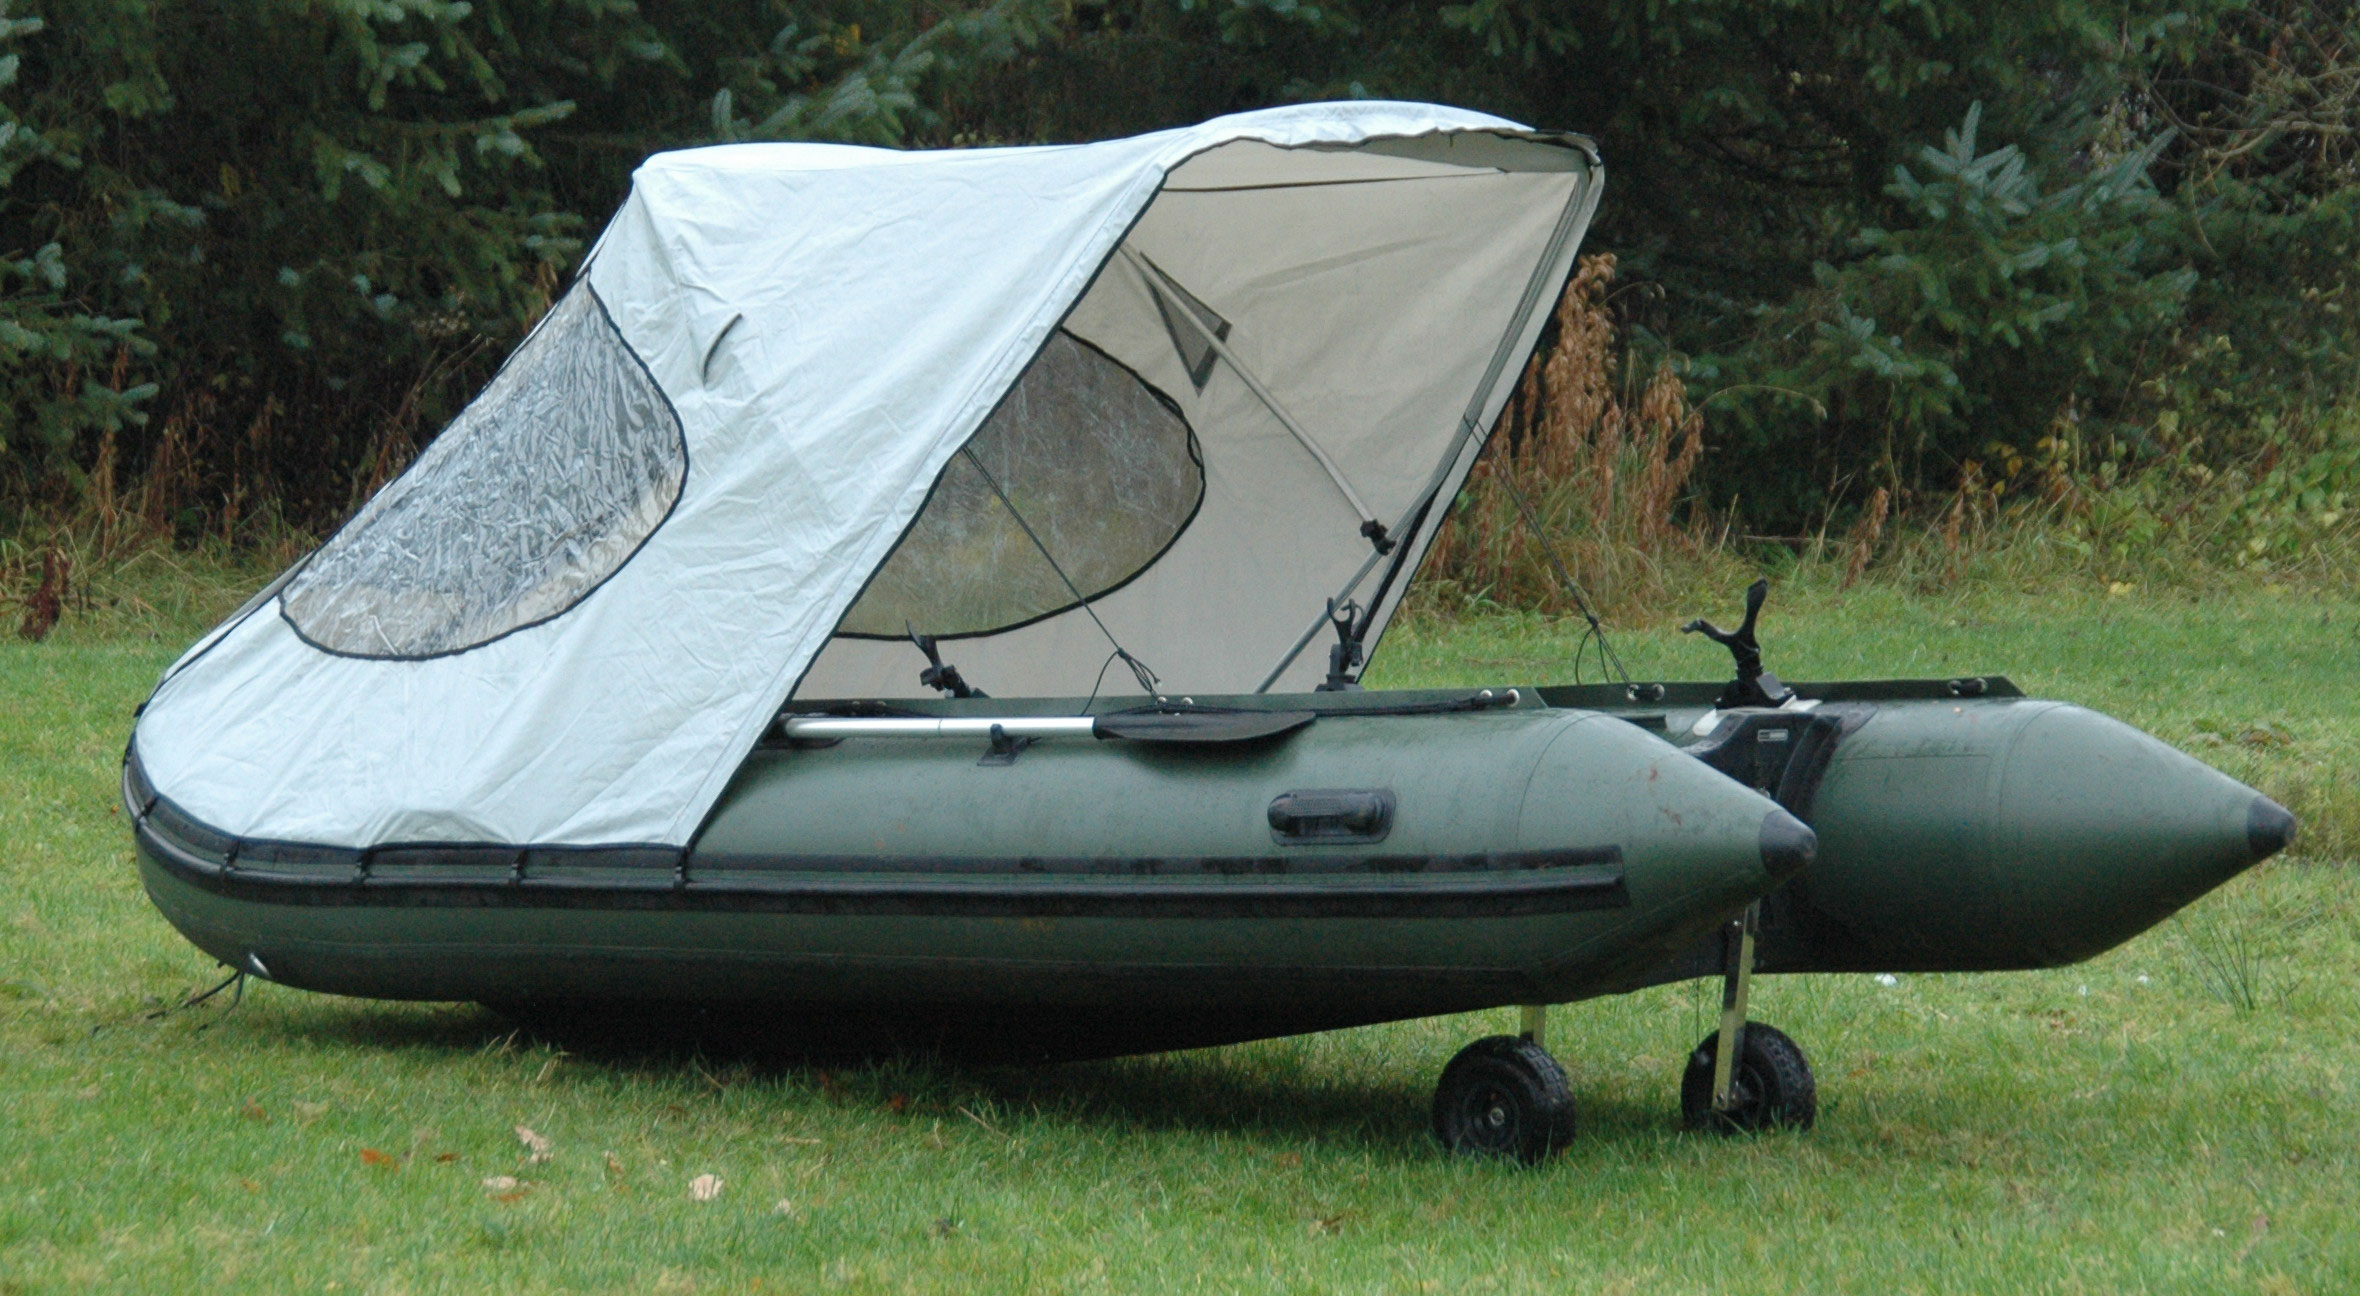 Sentinel BISON MARINE BIMINI COCKPIT TENT CANOPY FOR INFLATABLE BOAT & BISON MARINE BIMINI COCKPIT TENT CANOPY FOR INFLATABLE BOAT | eBay